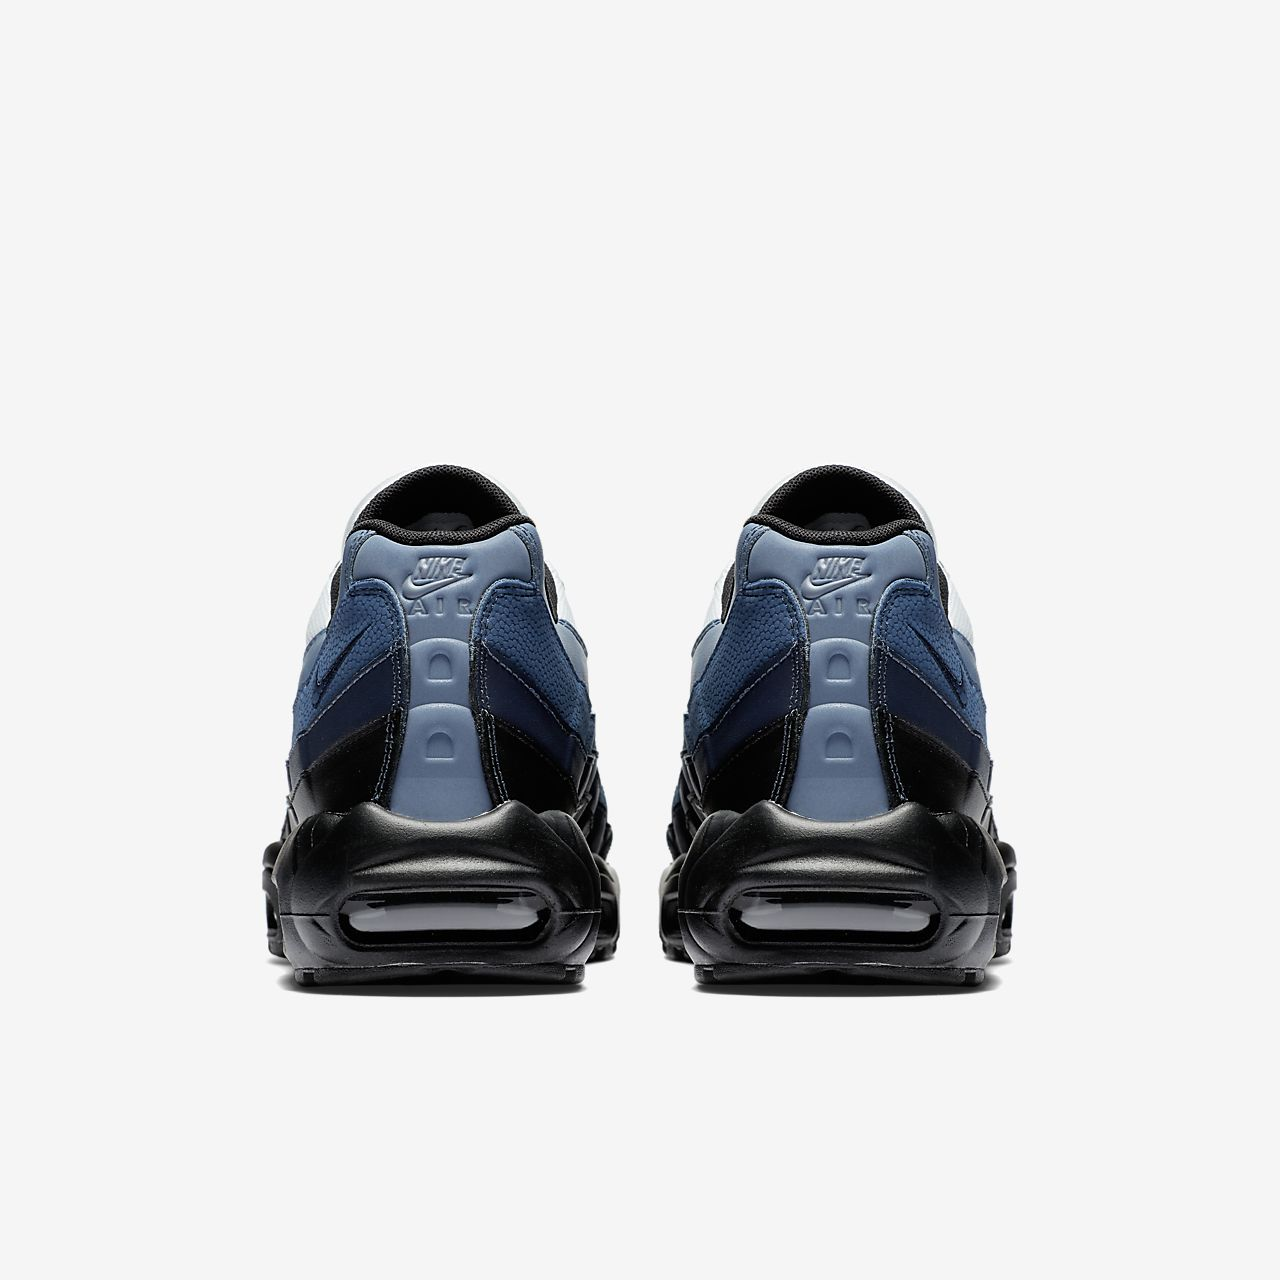 wholesale dealer 27341 19df0 scarpa nike air max 95 essential nero navy blue pure platinum obsidian  749766-028